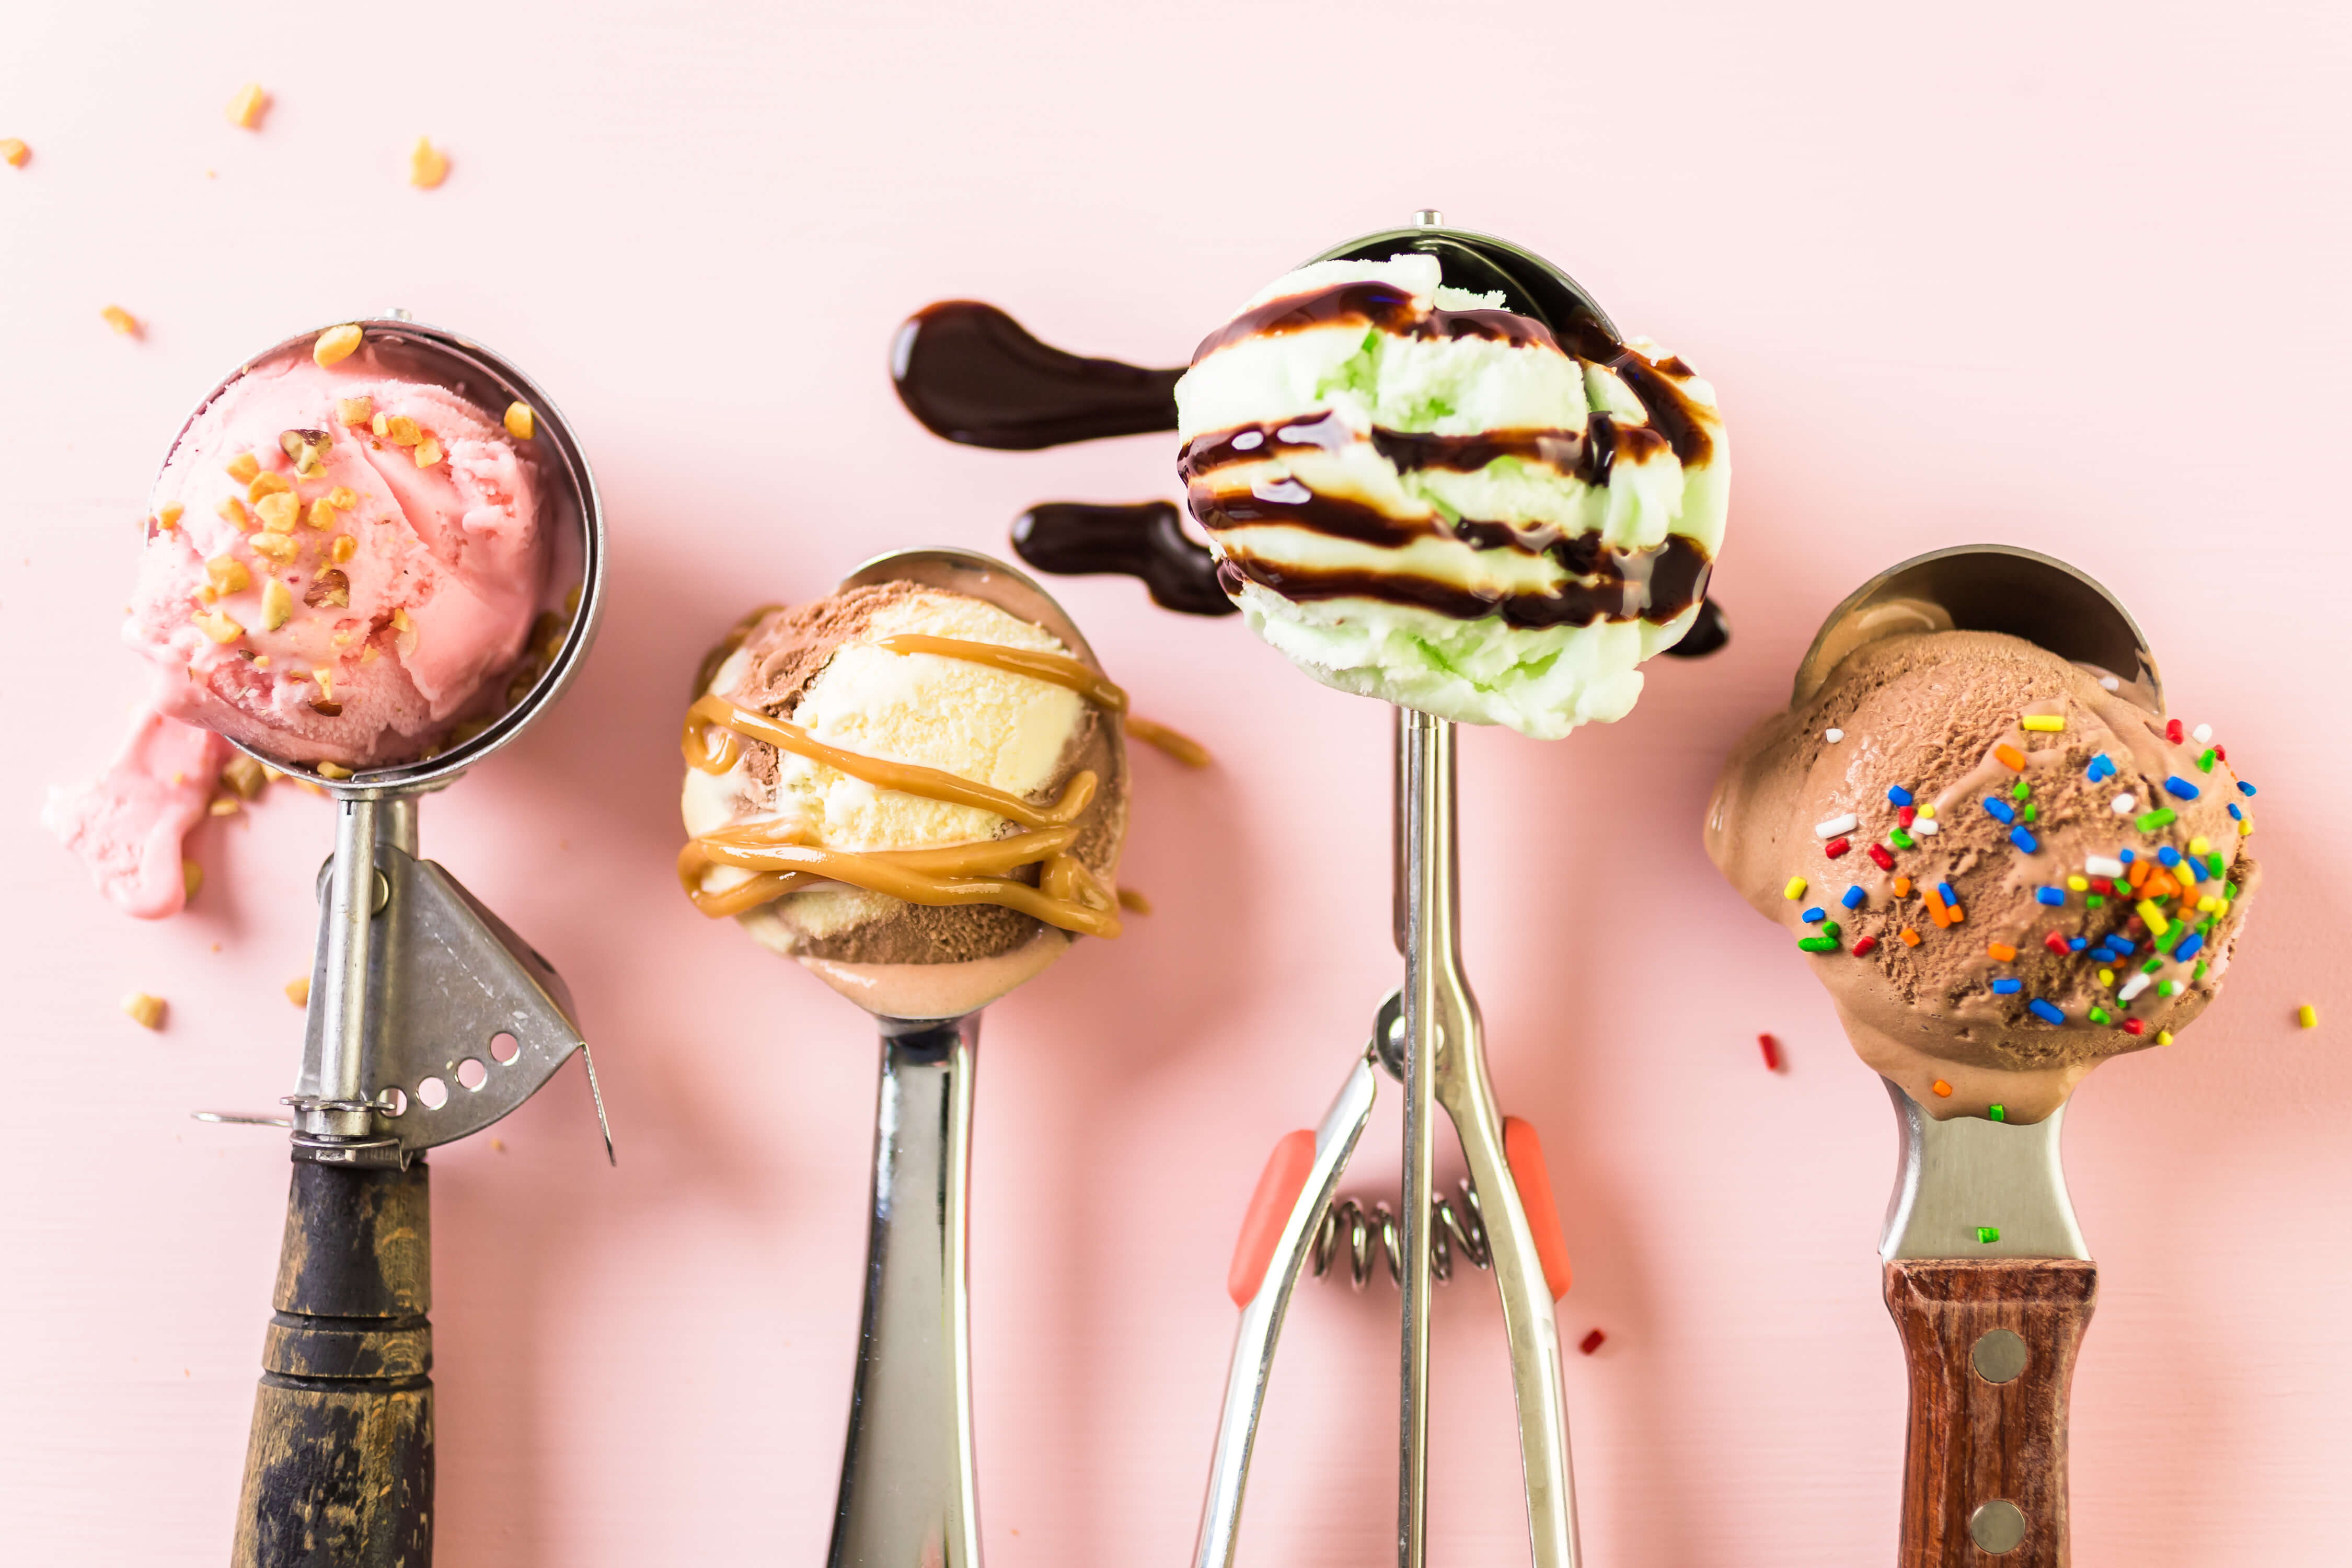 Celebrate National Ice Cream Day With a Chilly Treat Near Union Wharf - blog post image